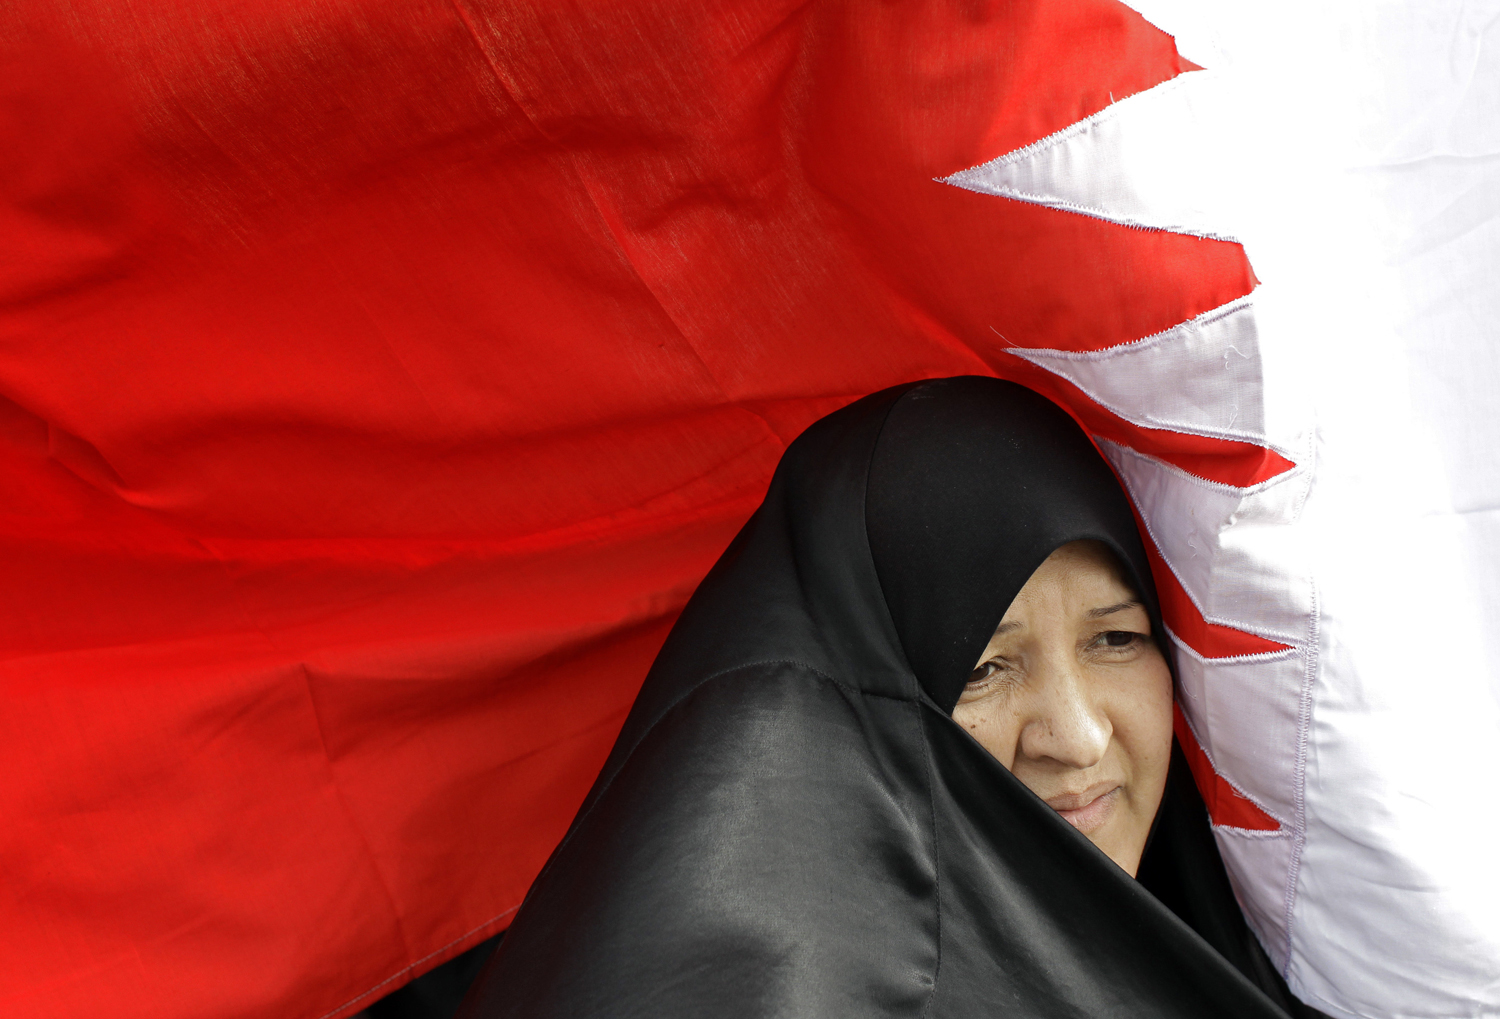 http://4.bp.blogspot.com/-e-uvZBfUlfY/Tc7t6FpbbTI/AAAAAAAAA-8/Pbn5zAkU9nA/s1600/Graphics+Wallpapers+Flag+of+Bahrain+%25284%2529.jpg